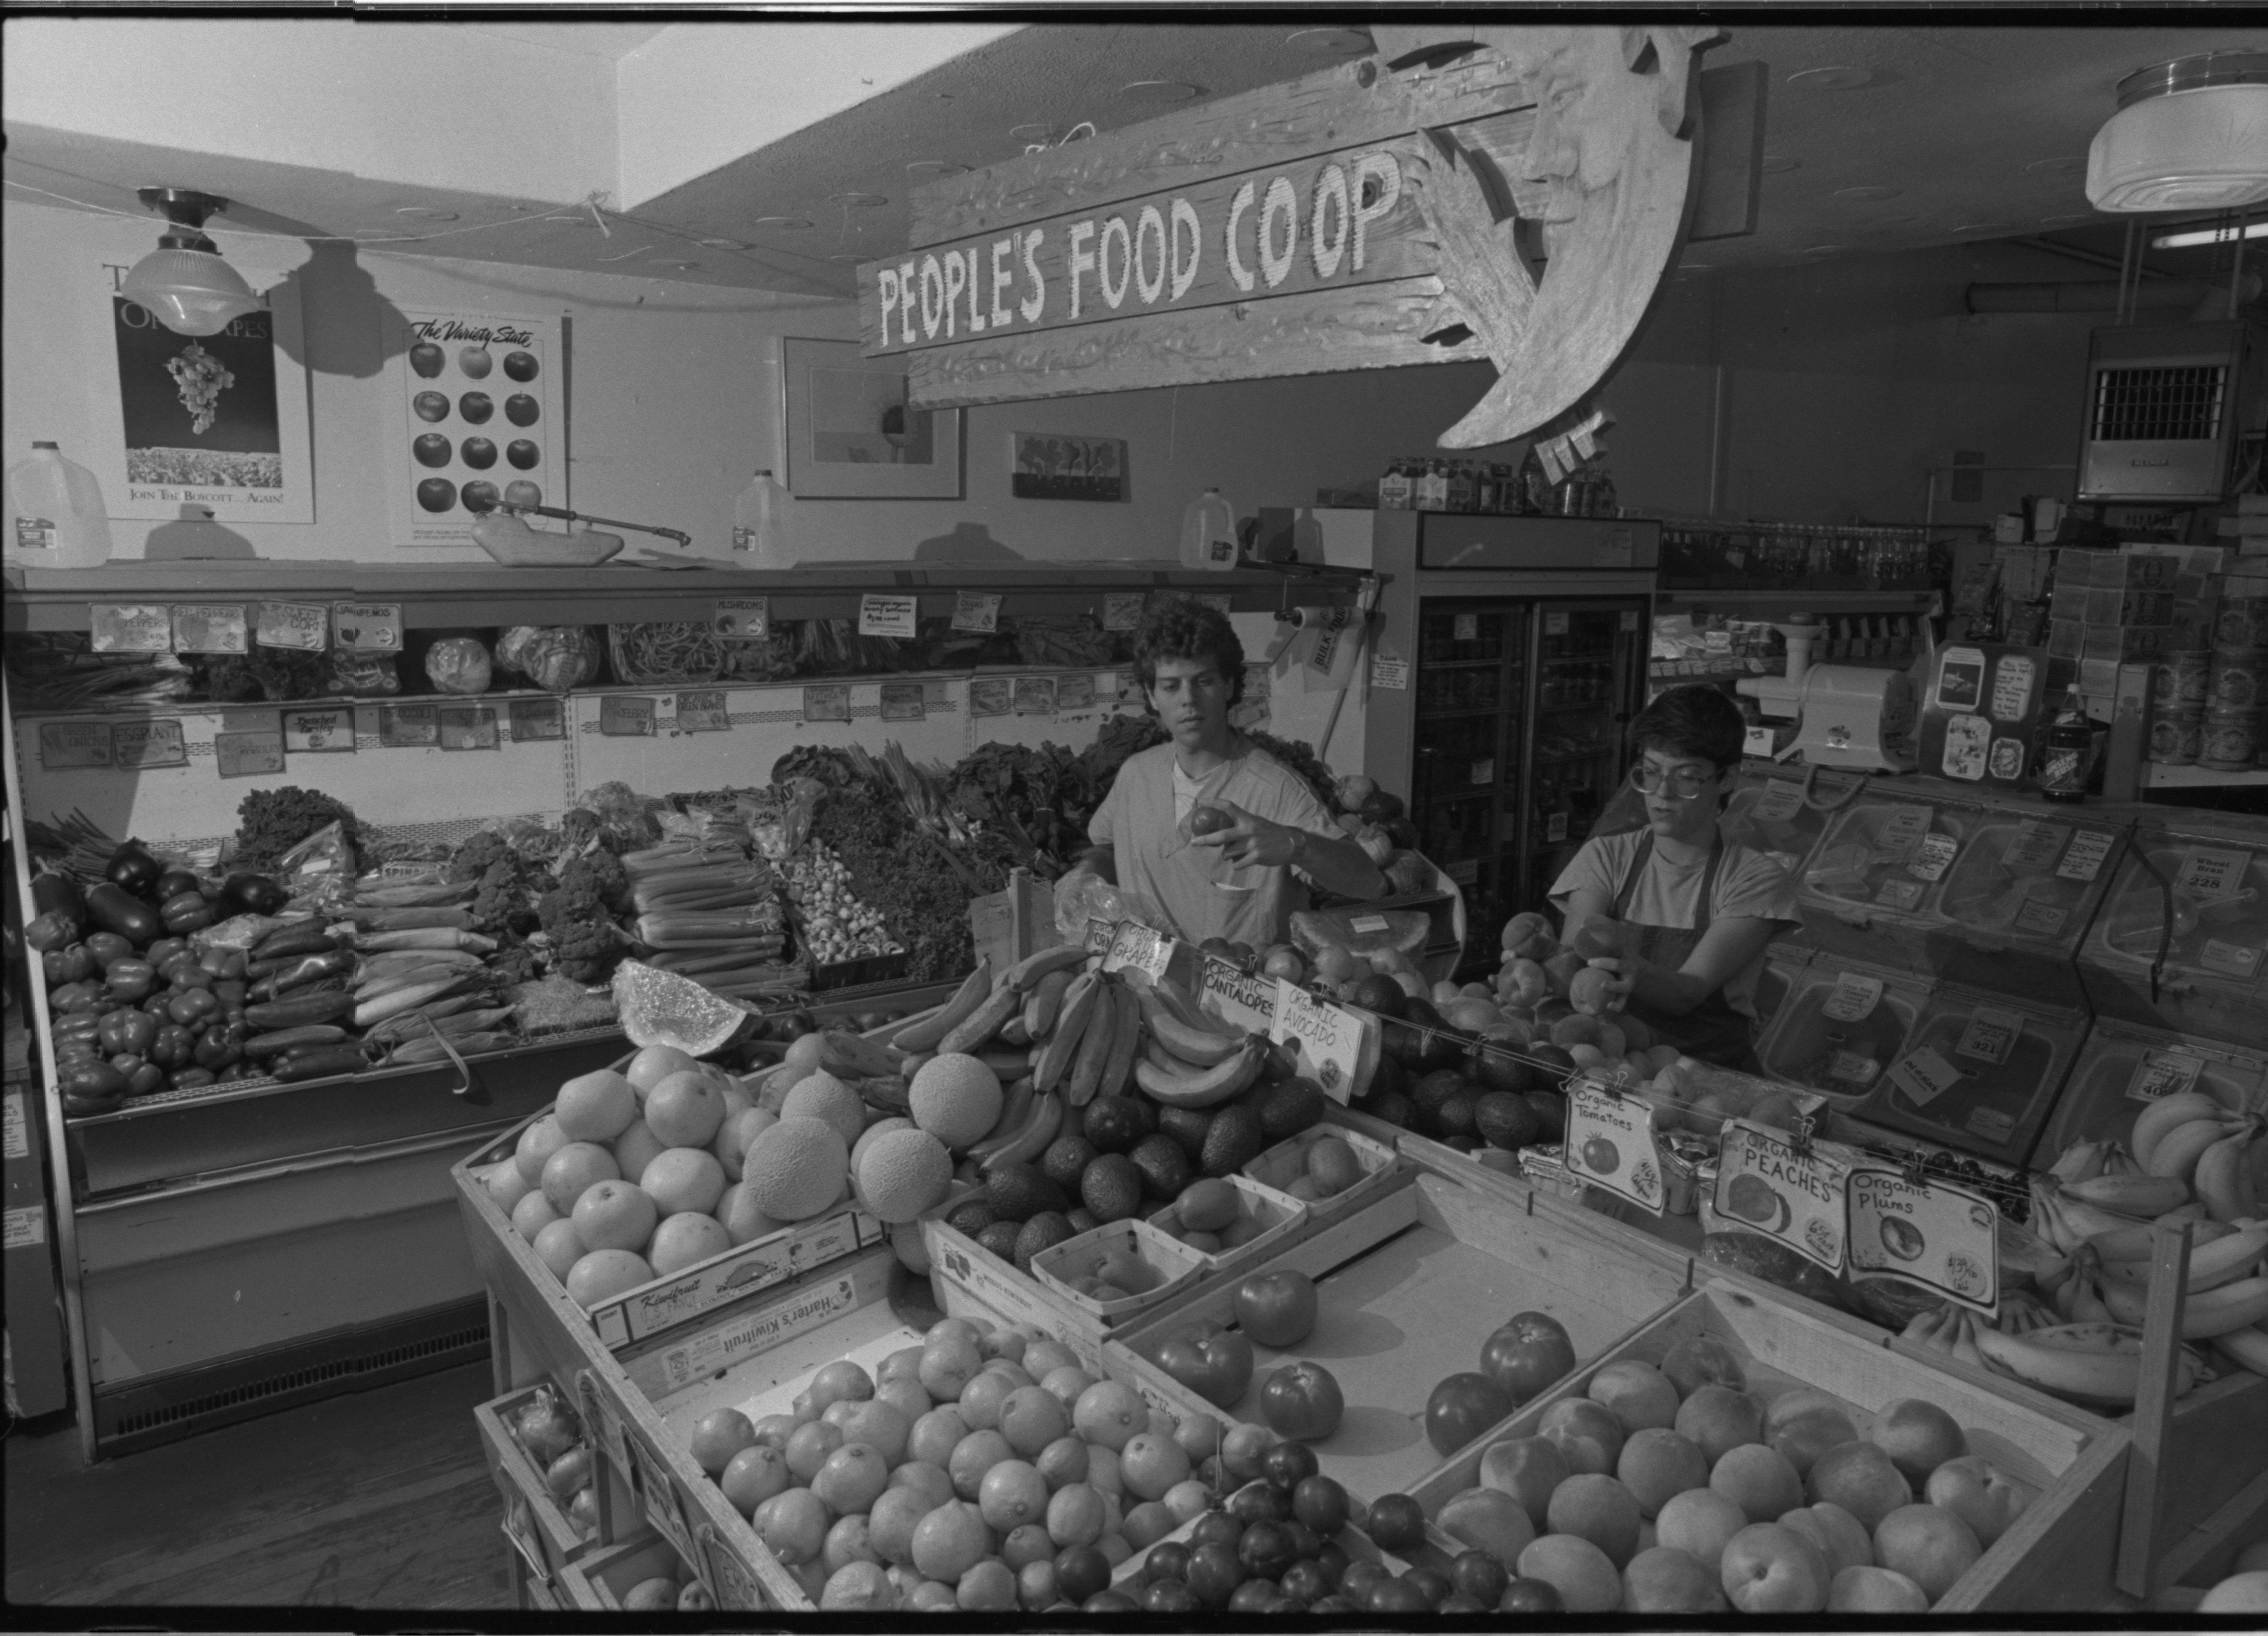 People's Food Co-op Anchors 4th Avenue, July 1990 image